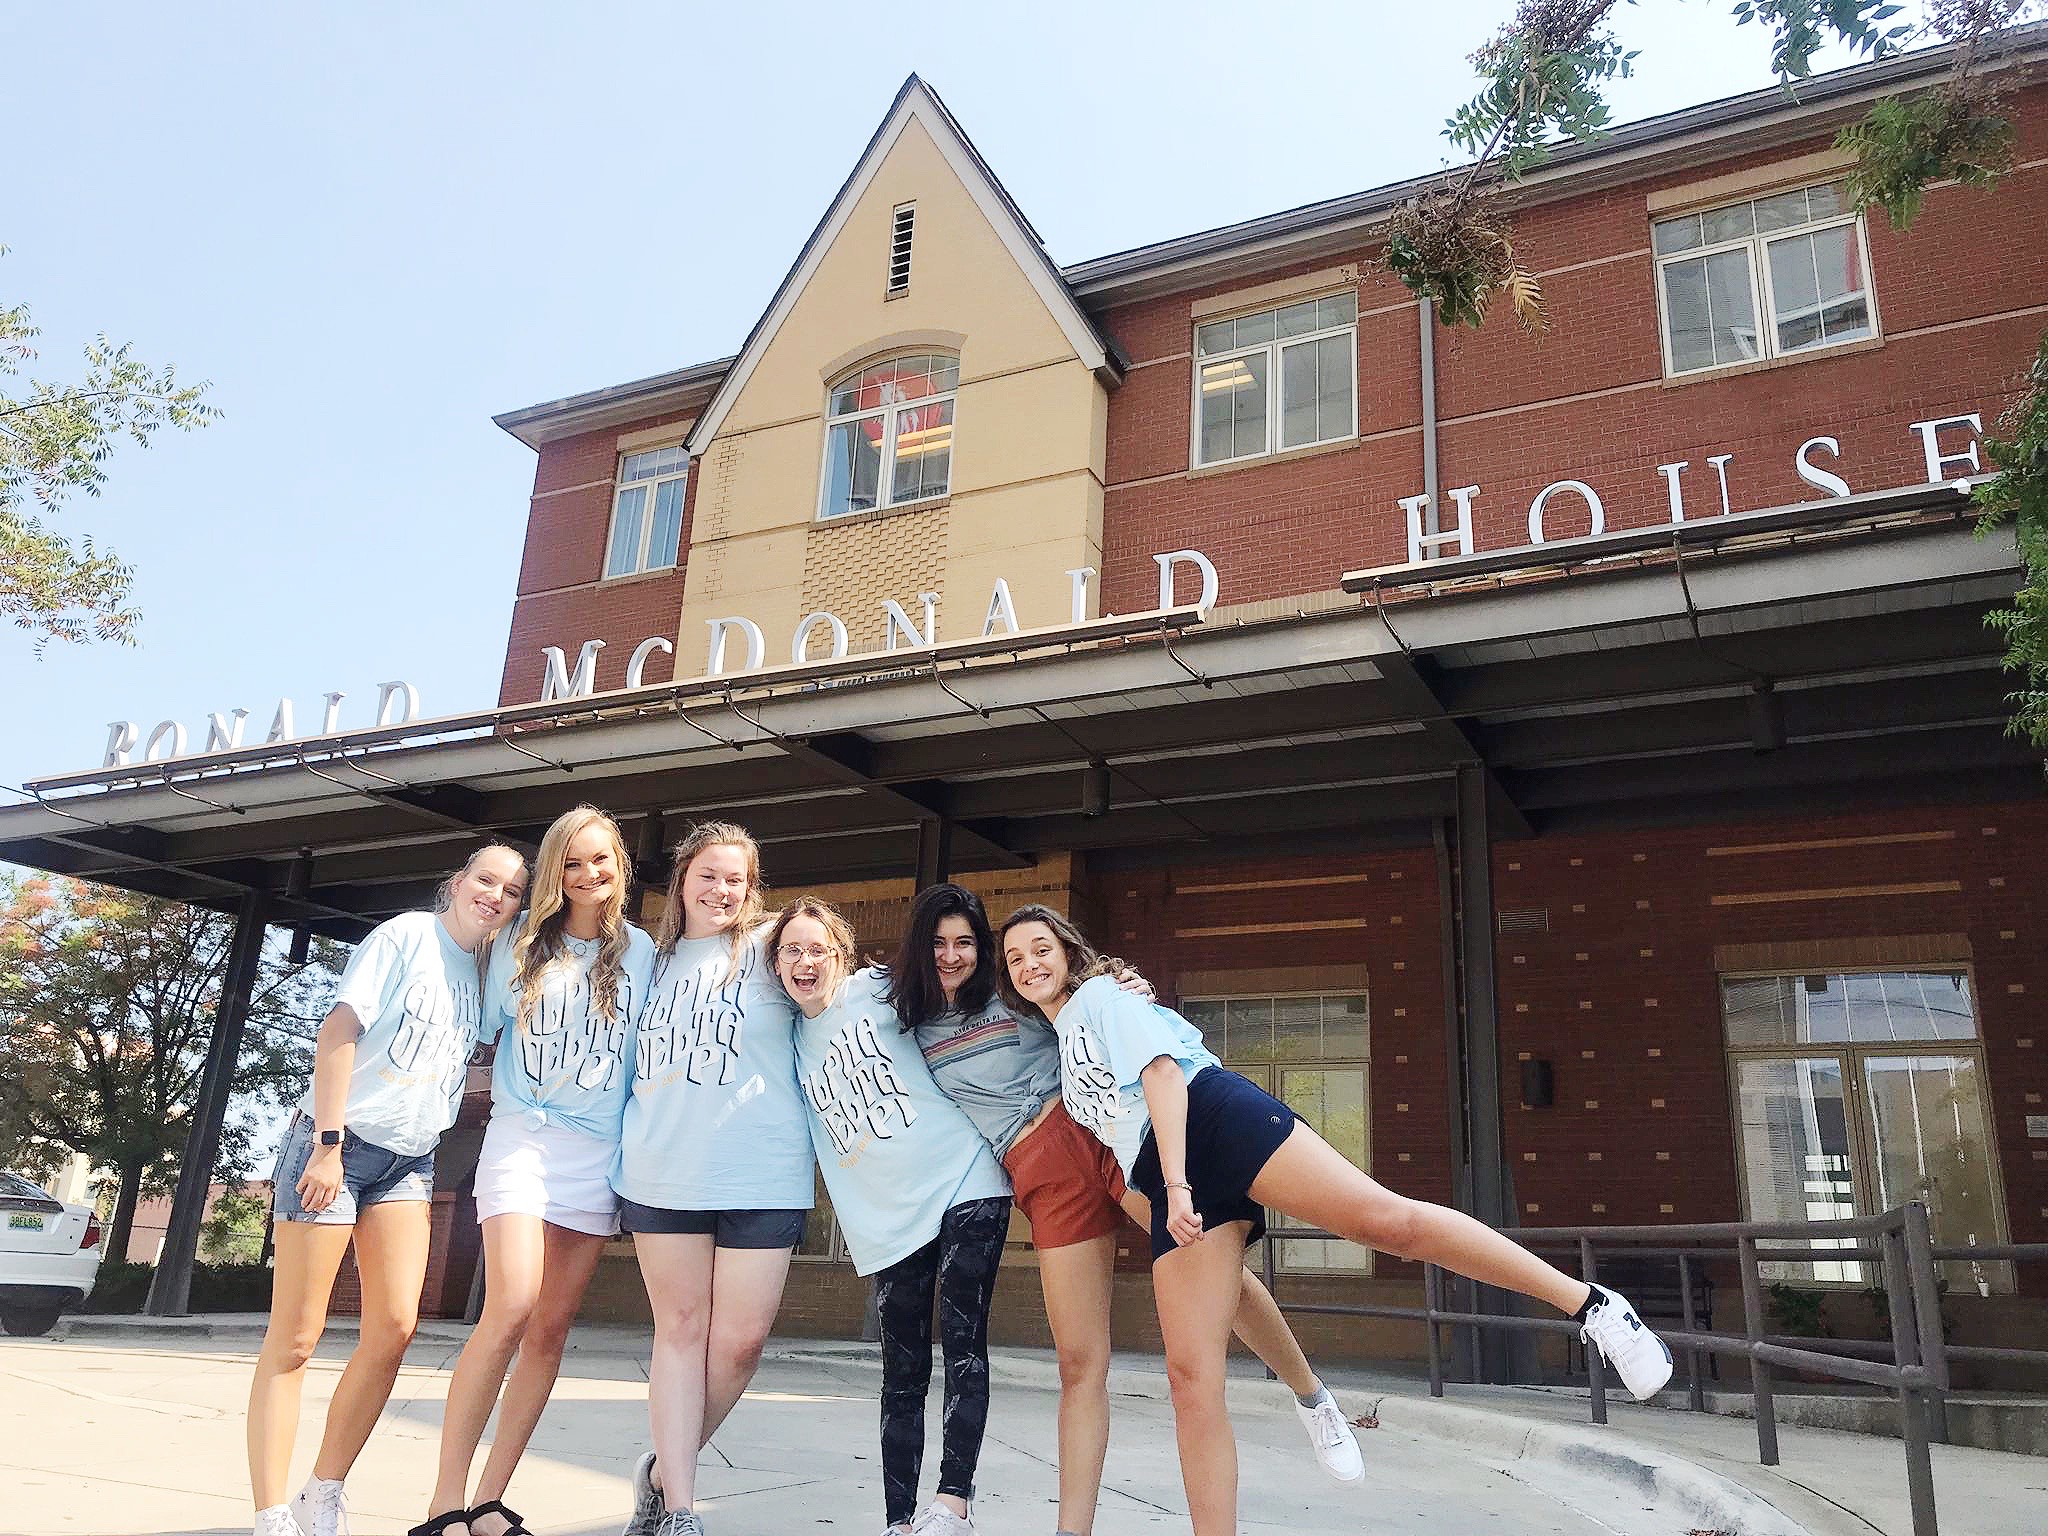 Members of Alpha Delta Pi pose for a photo outside of the Ronald McDonald House Charities.